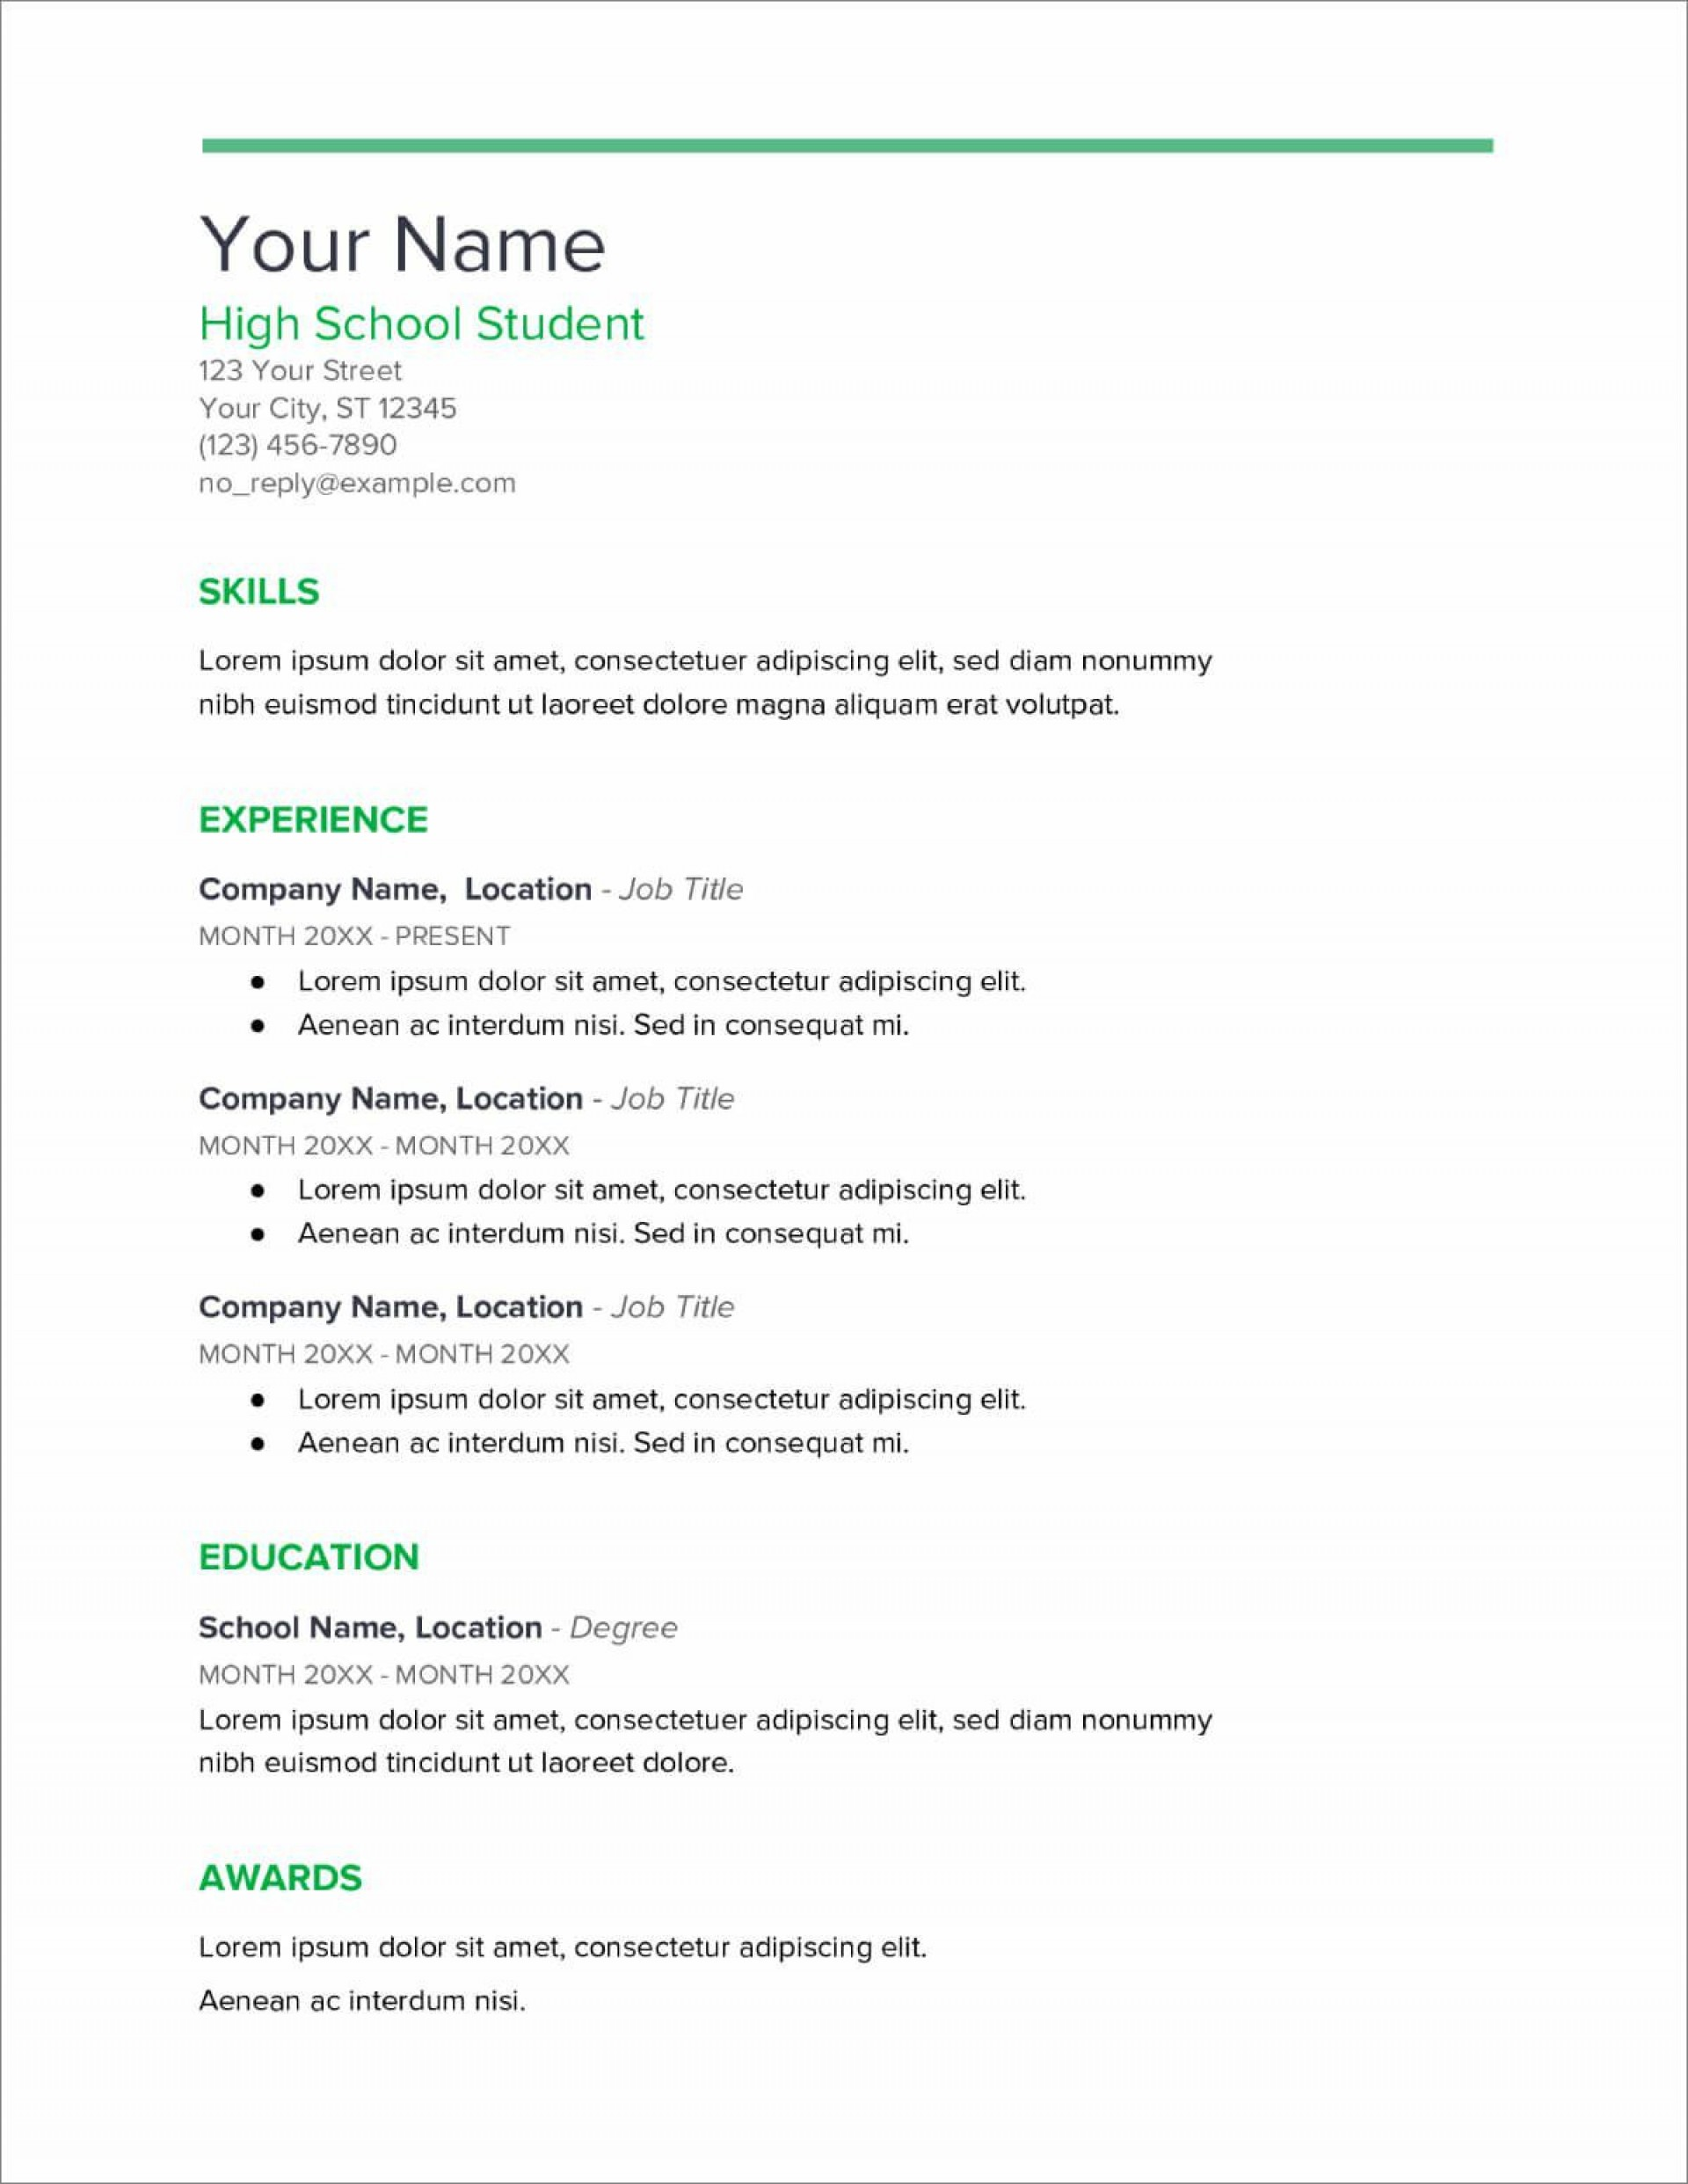 007 Rare Resume Template High School Student Example  Students Easy For Curriculum Vitae Format Pdf Free Downloadable1920